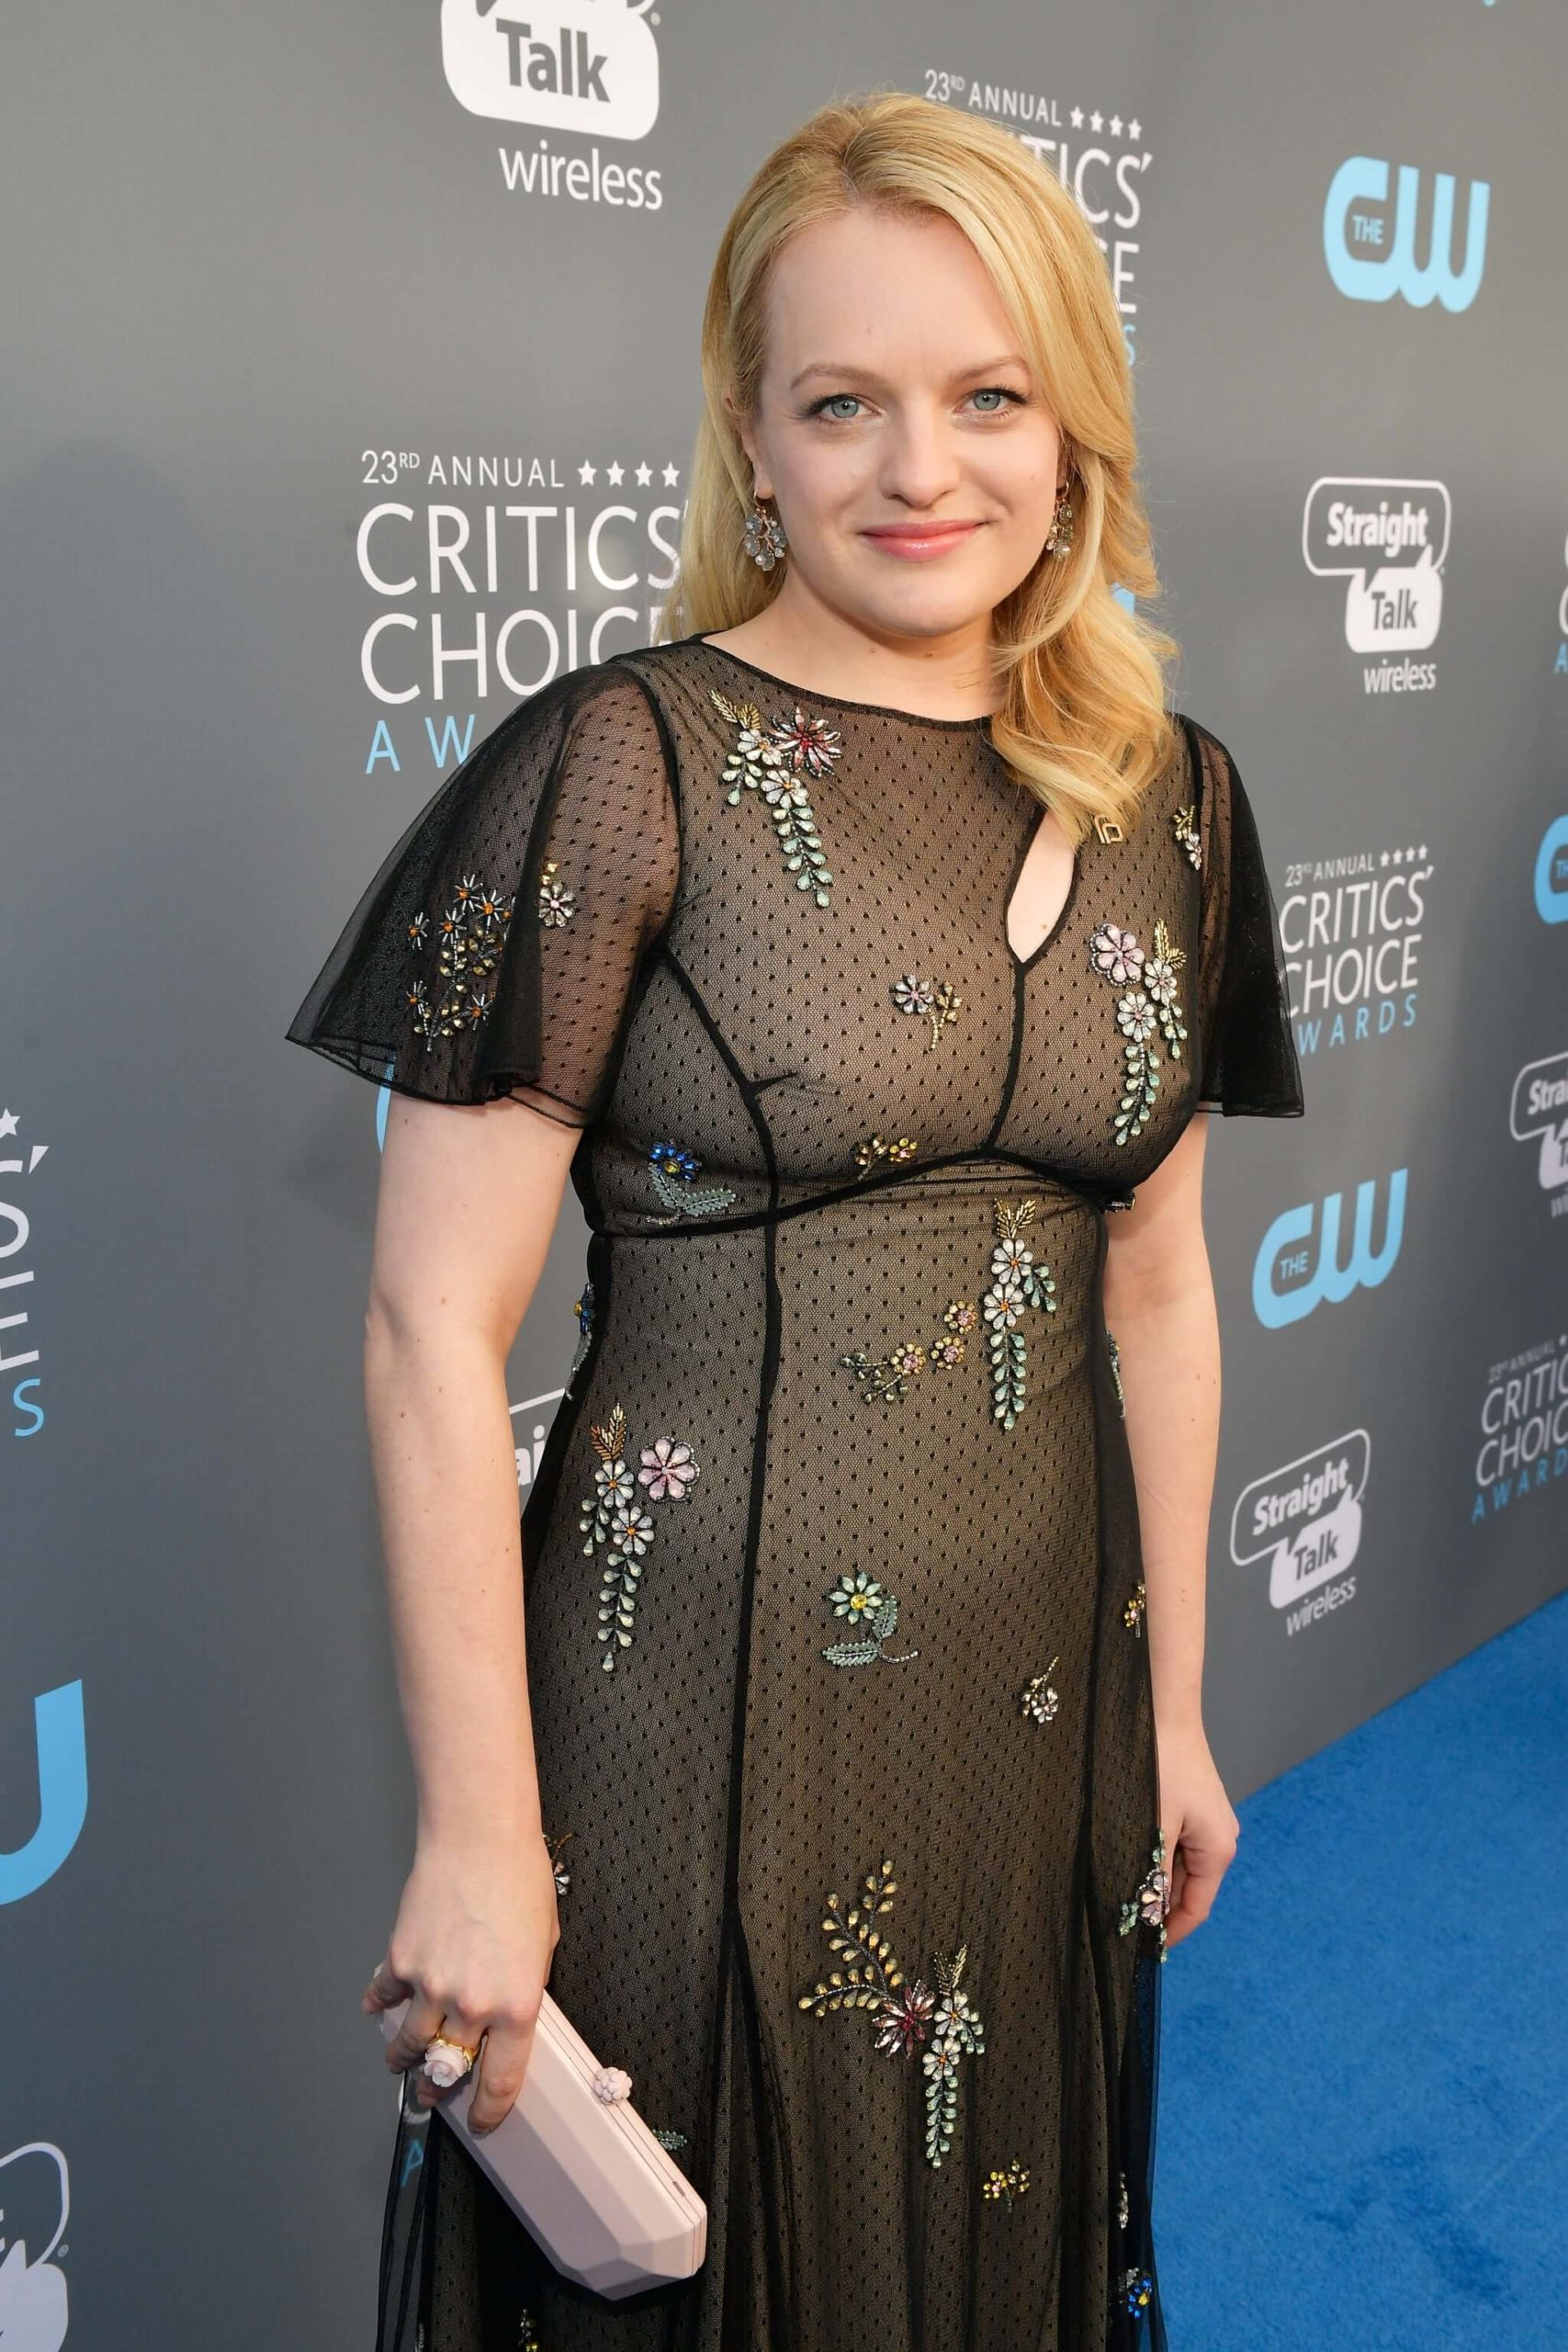 Elizabeth Moss was most recently seen in the film SHIRLEY